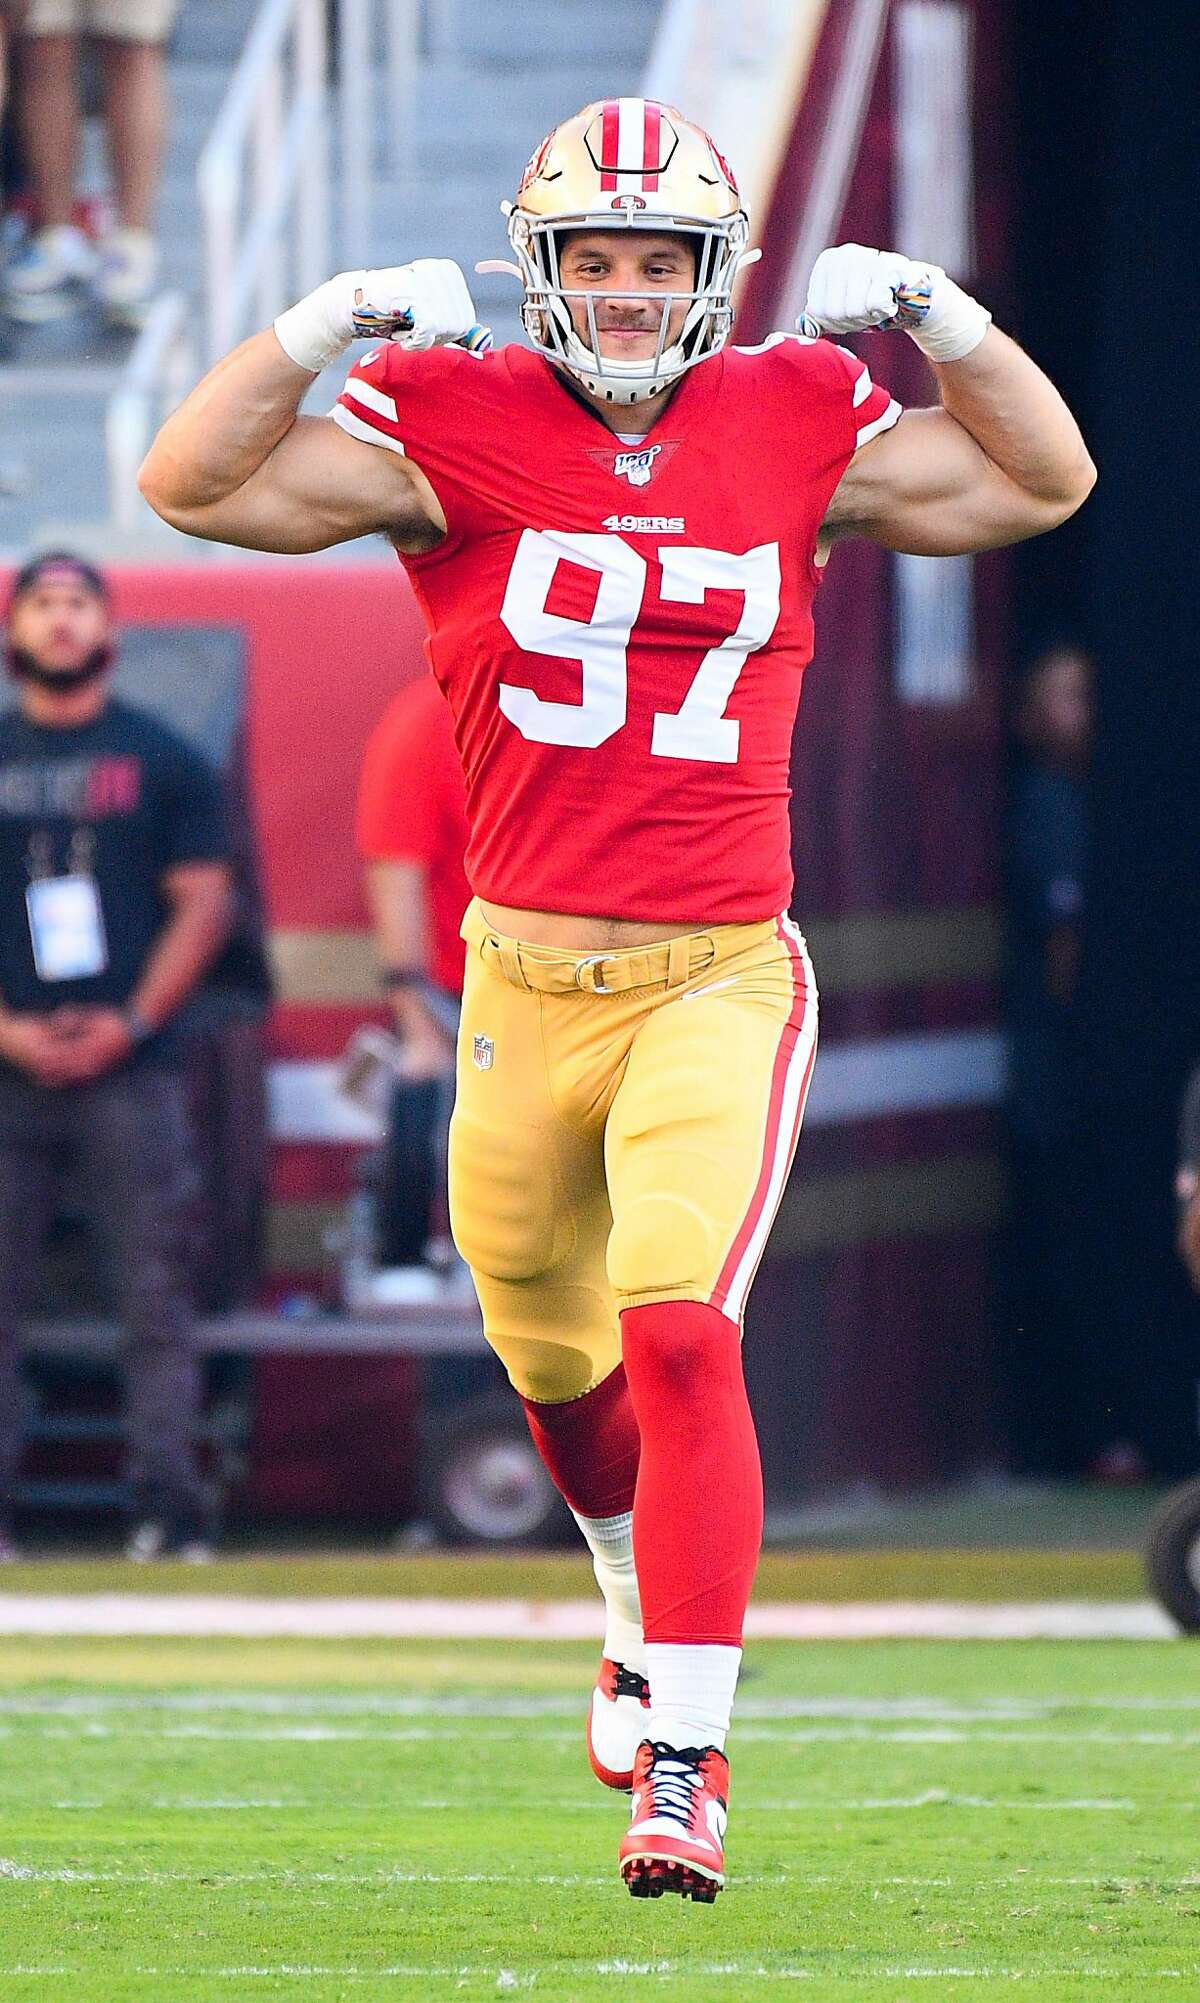 SANTA CLARA, CA - OCTOBER 07: San Francisco 49ers Defensive End Nick Bosa (97) takes the field during the National Football League game between the Cleveland Browns and the San Francisco 49ers on October 7, 2019, at Levi's Stadium in Santa Clara, CA. (Photo by Brian Rothmuller/Icon Sportswire via Getty Images)